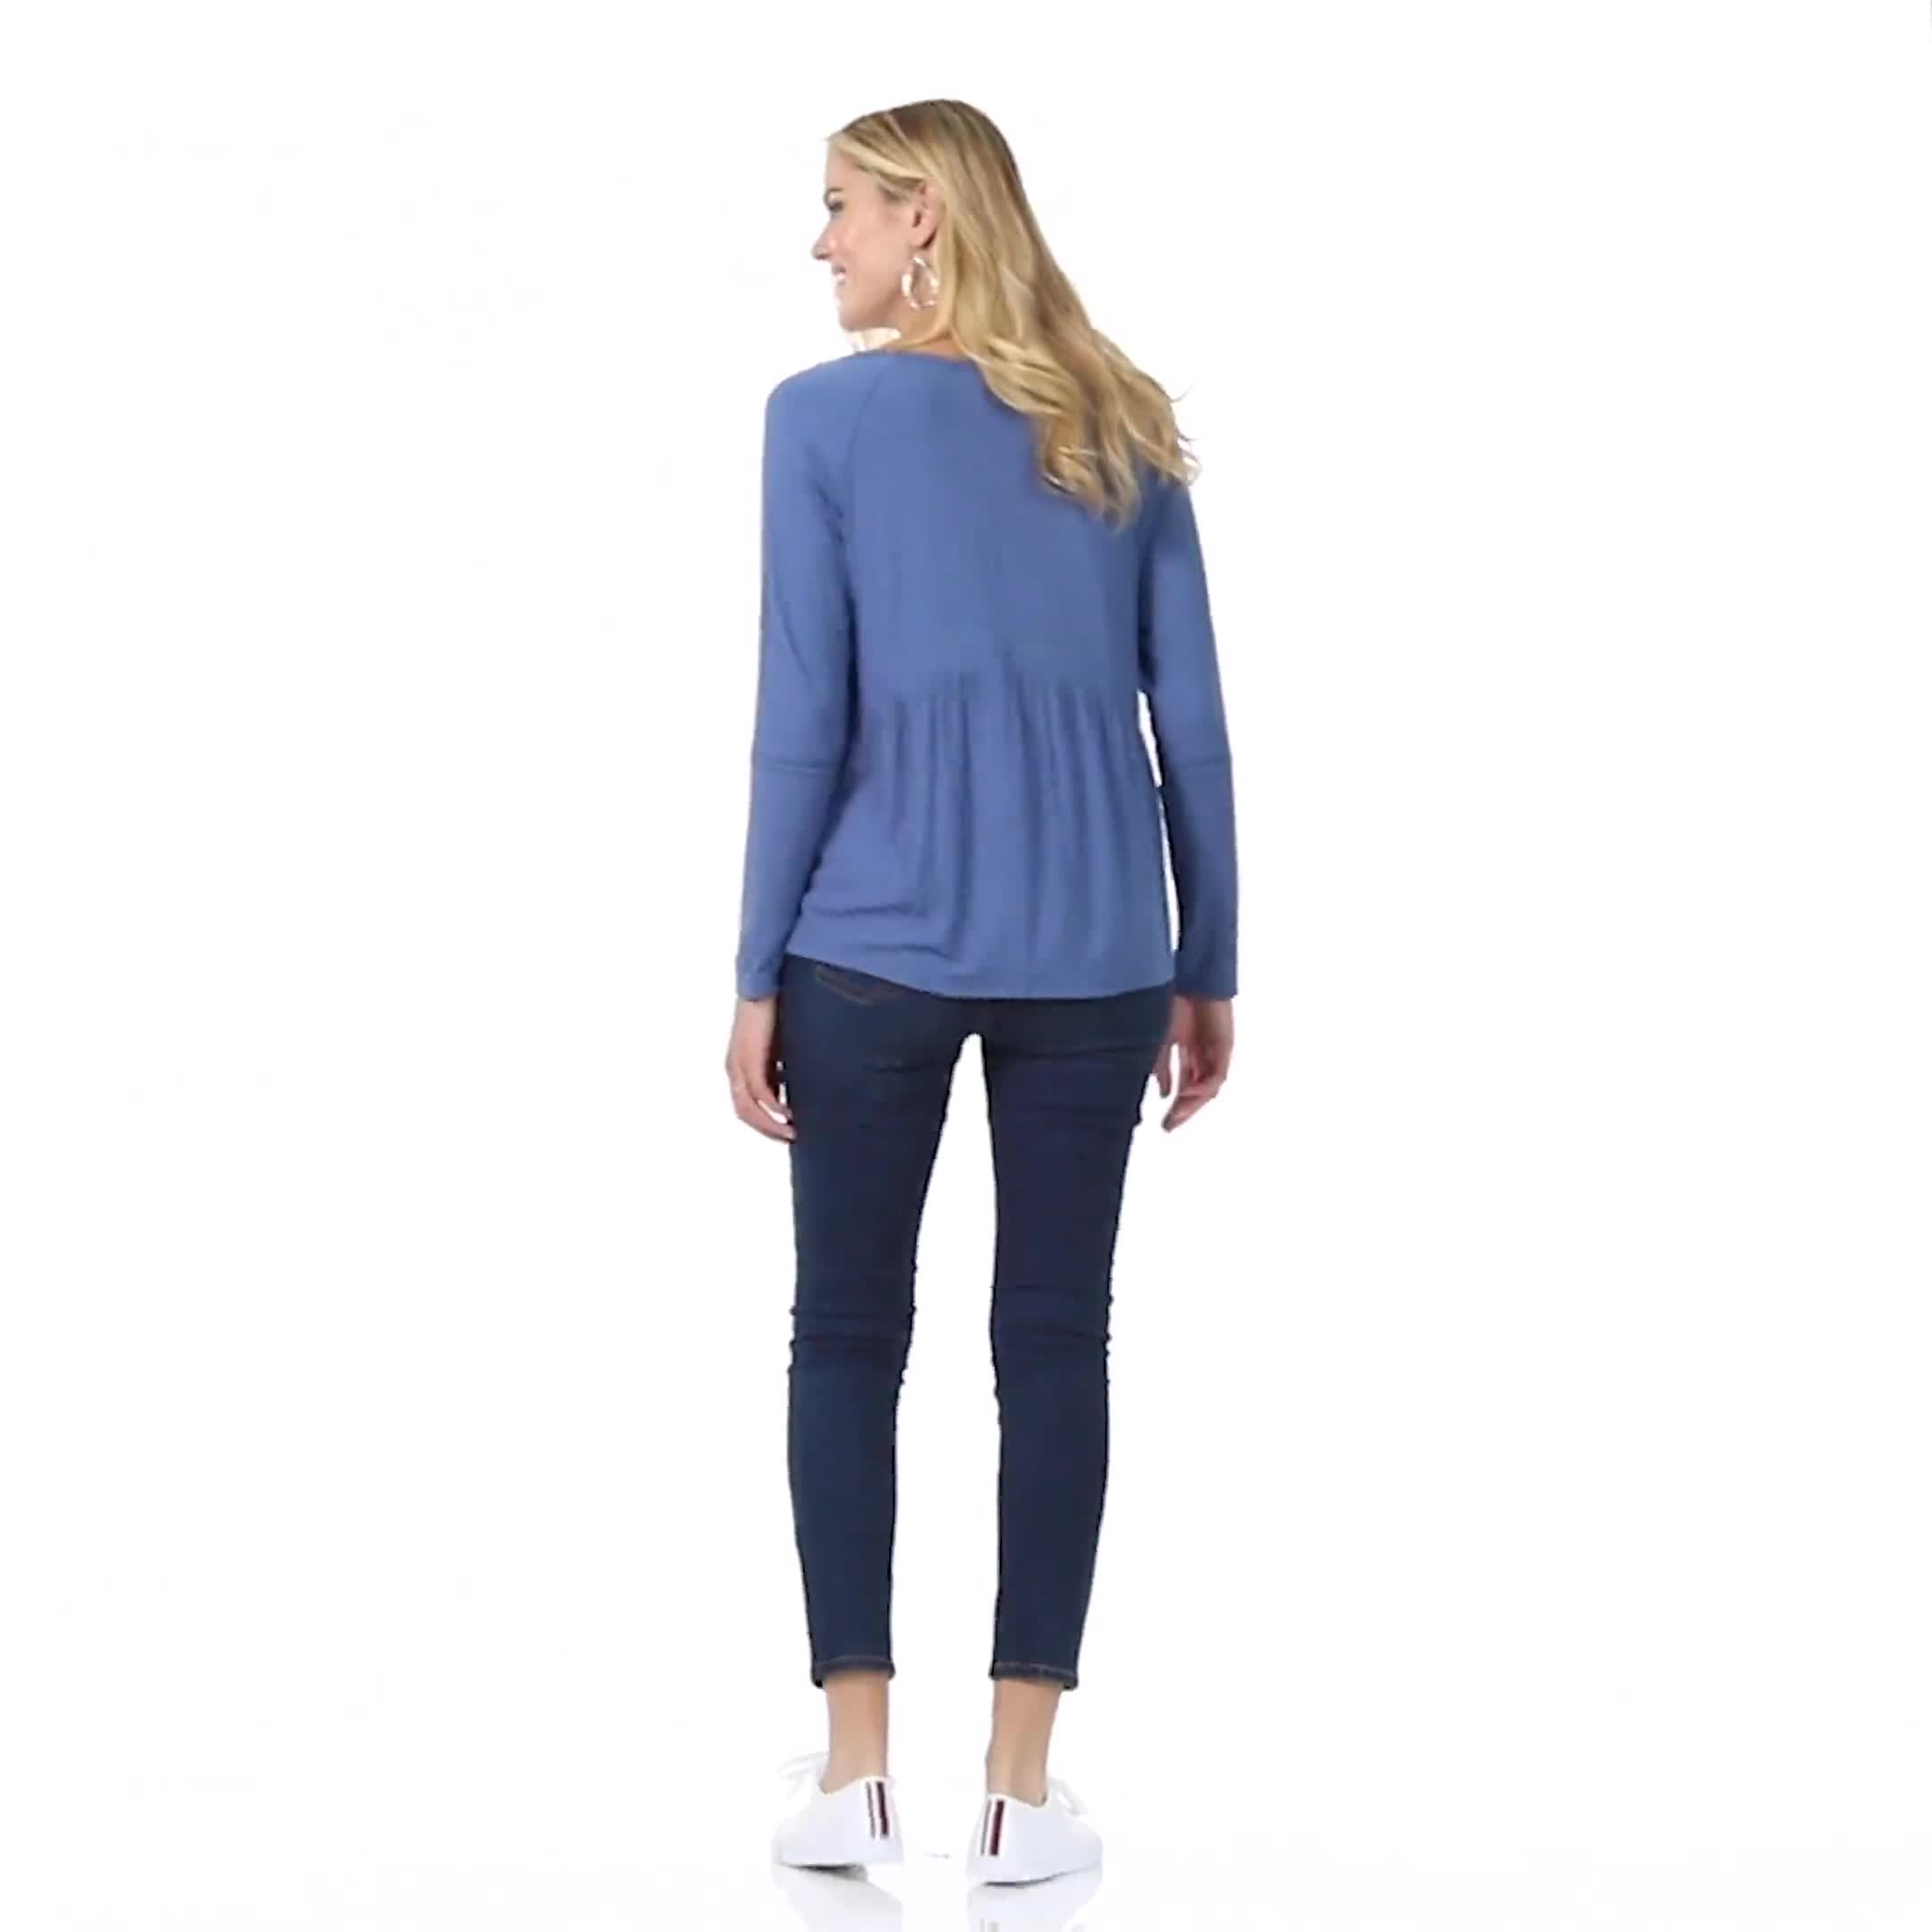 Pointelle V-Neck Knit Top - Video